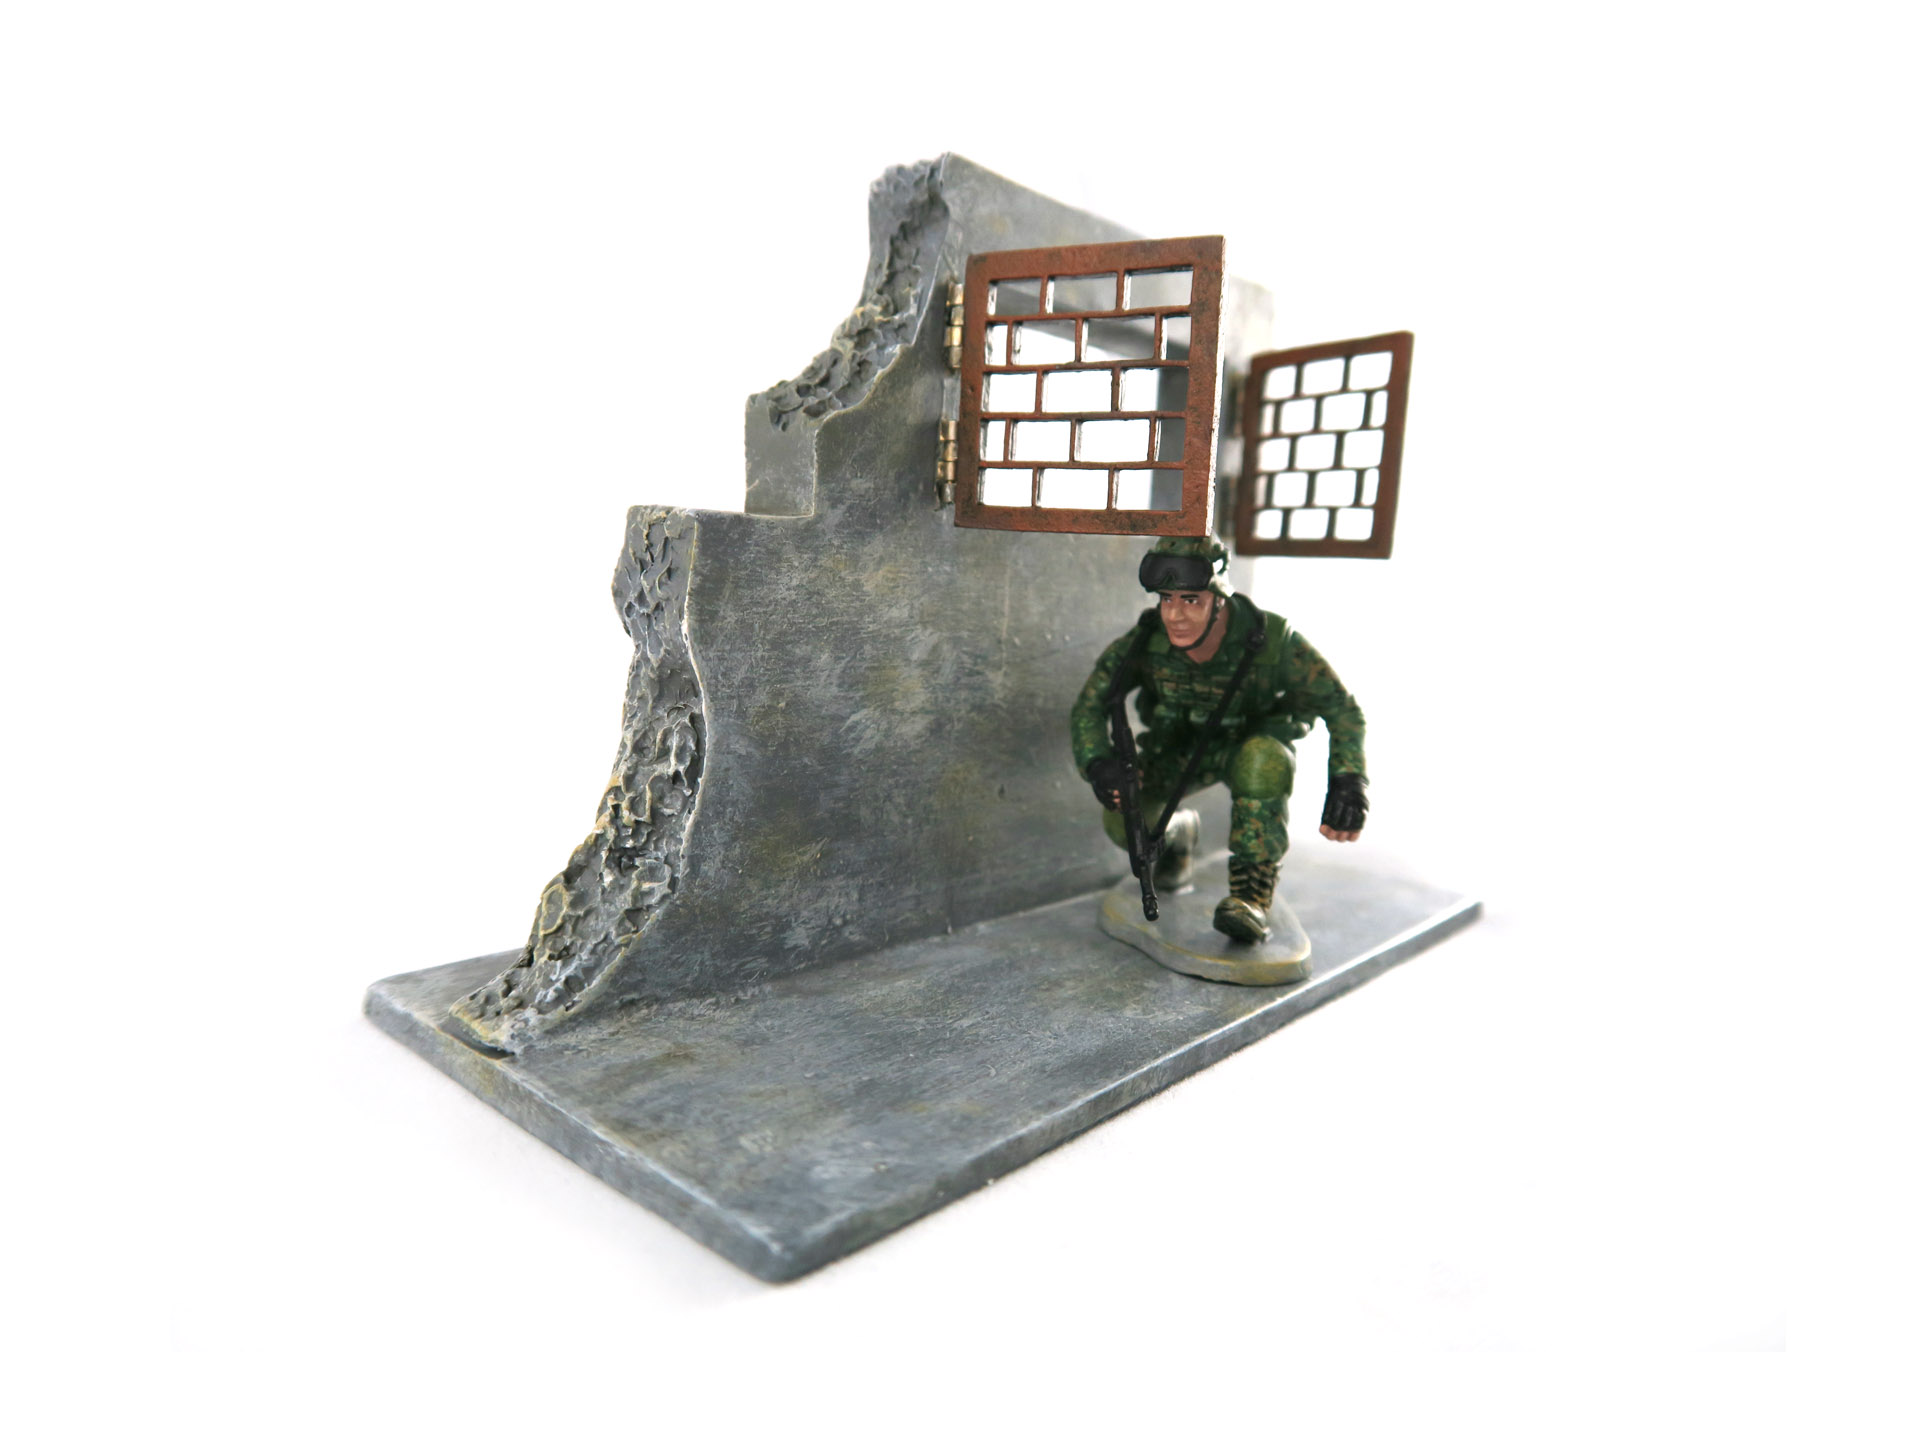 SAF Standard Obstacle Course SOC Corridor Obstacle Toy Soldier Collectible Figurine (Cover)